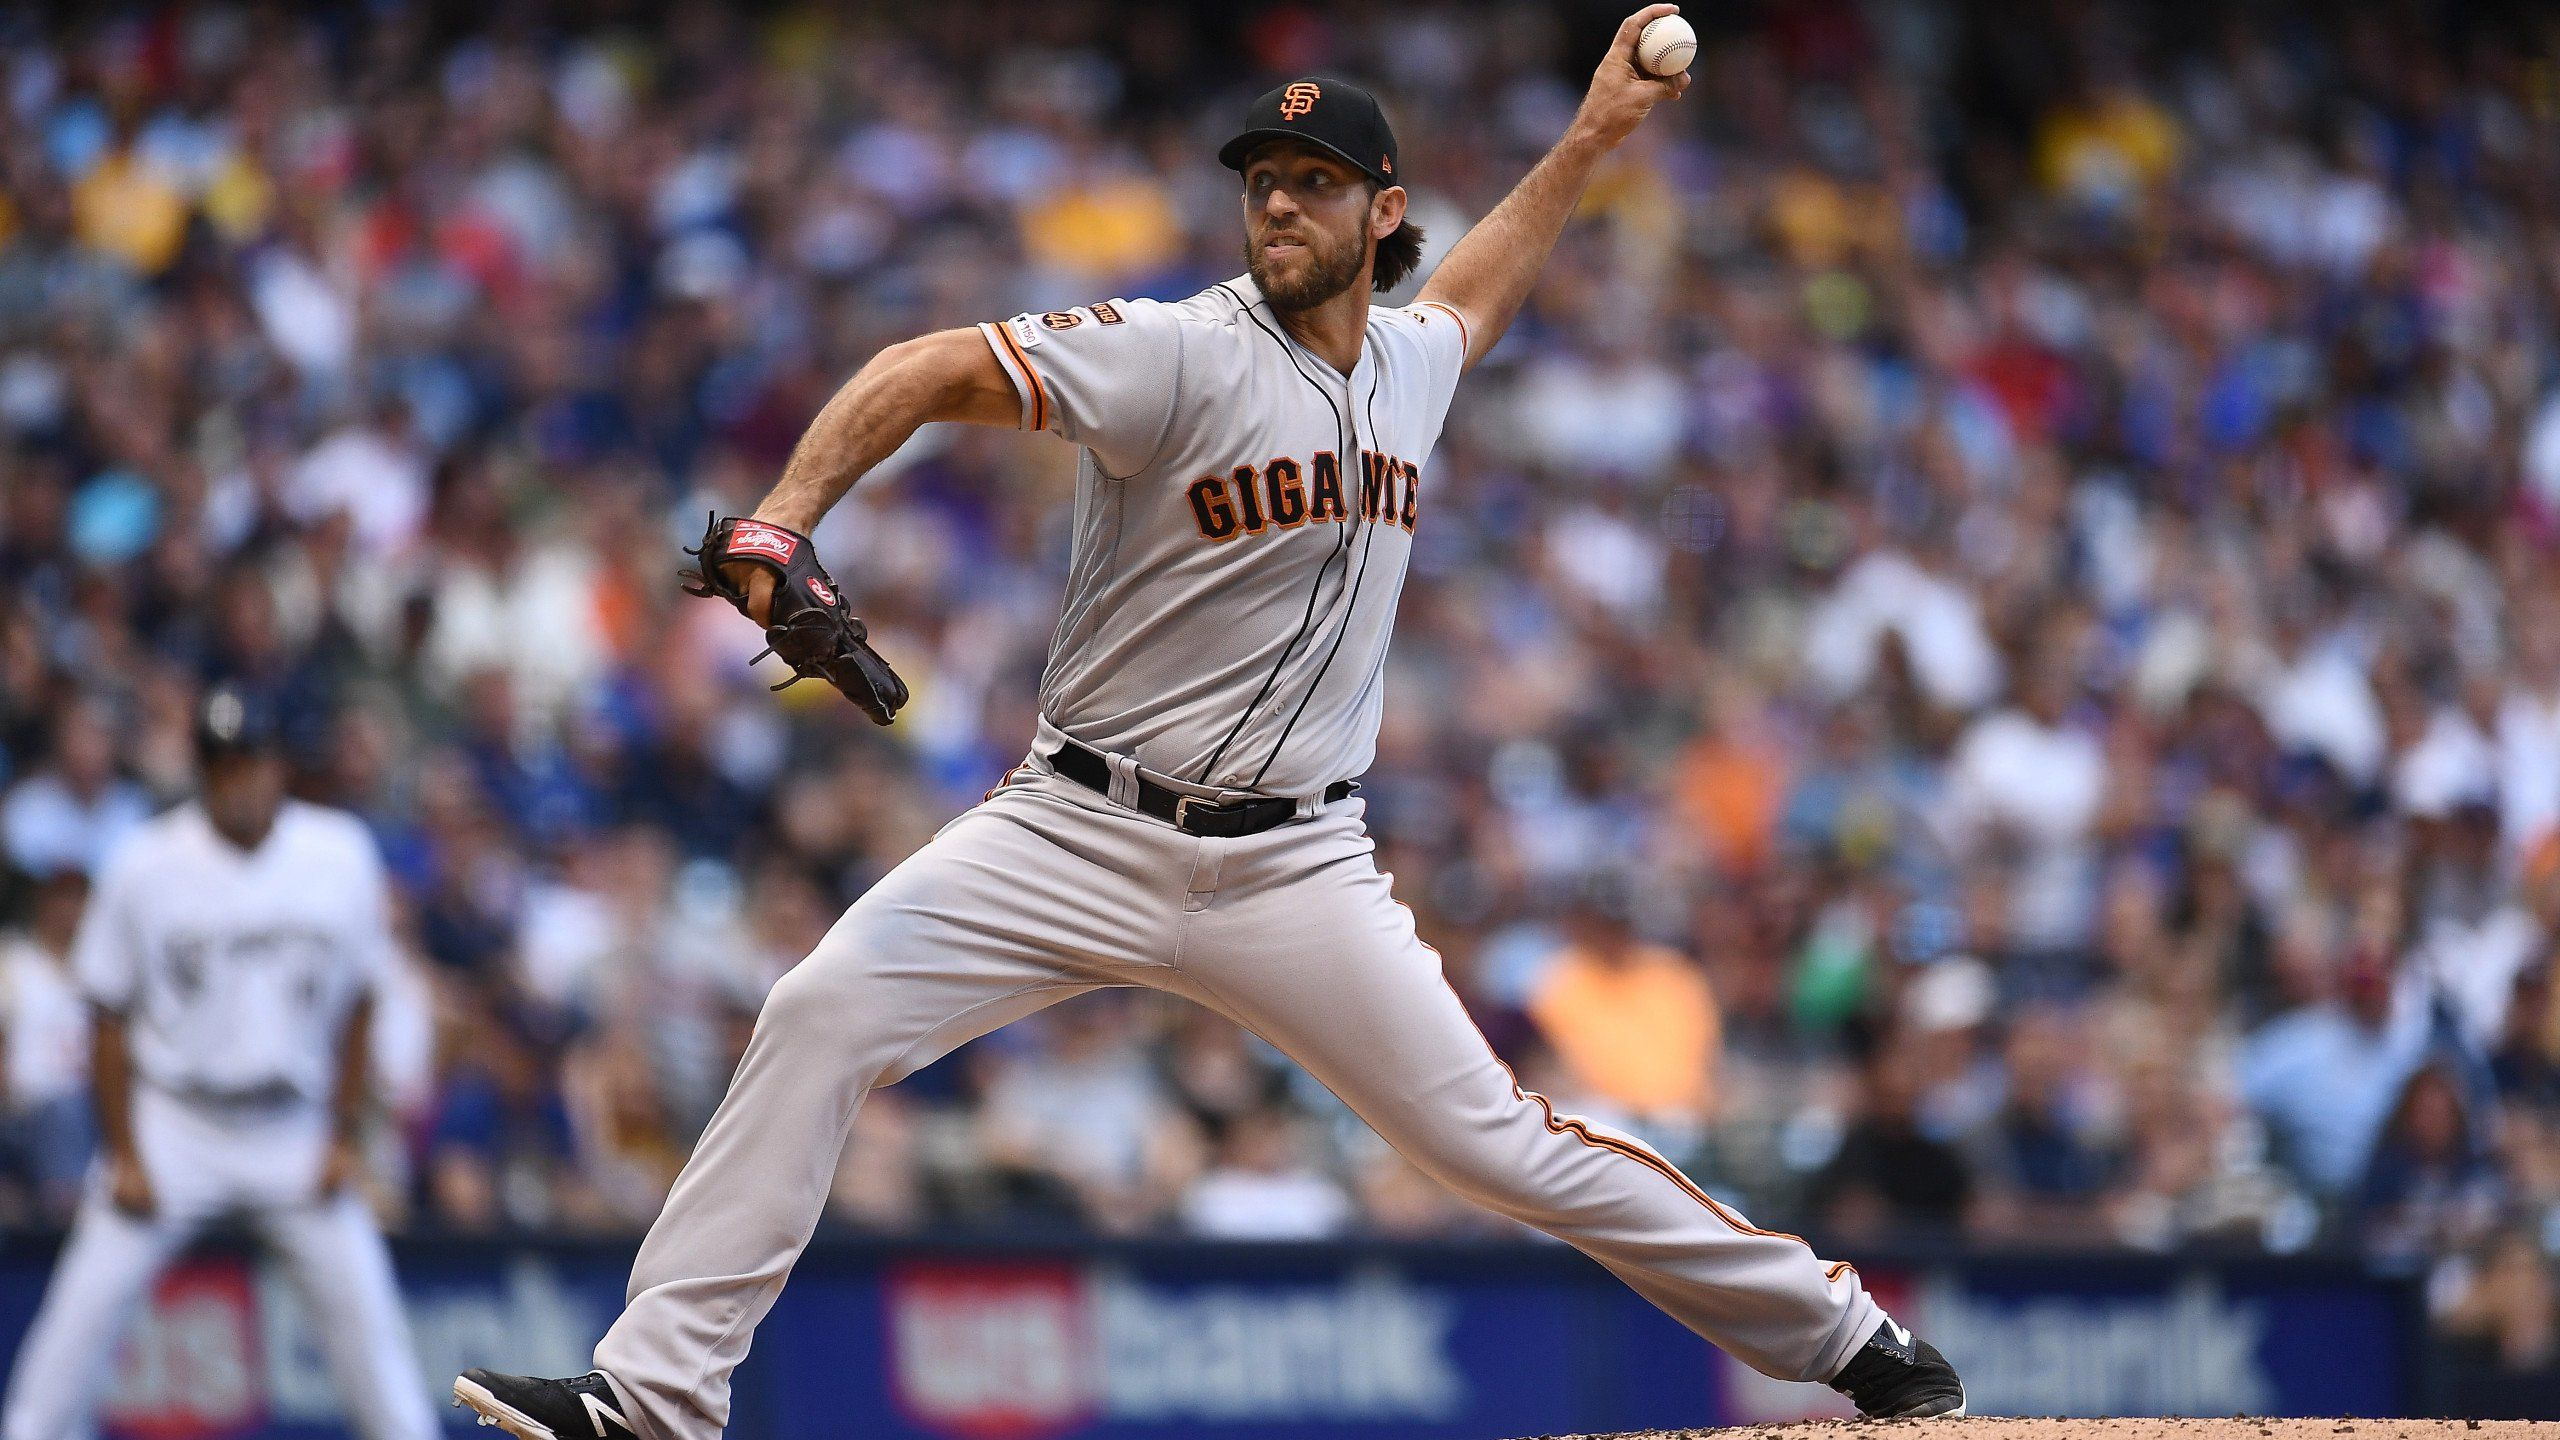 Mlb Rumors San Francisco Giants Will Trade Bumgarner Smith Watson And Dyson Only For A High Return Arenal